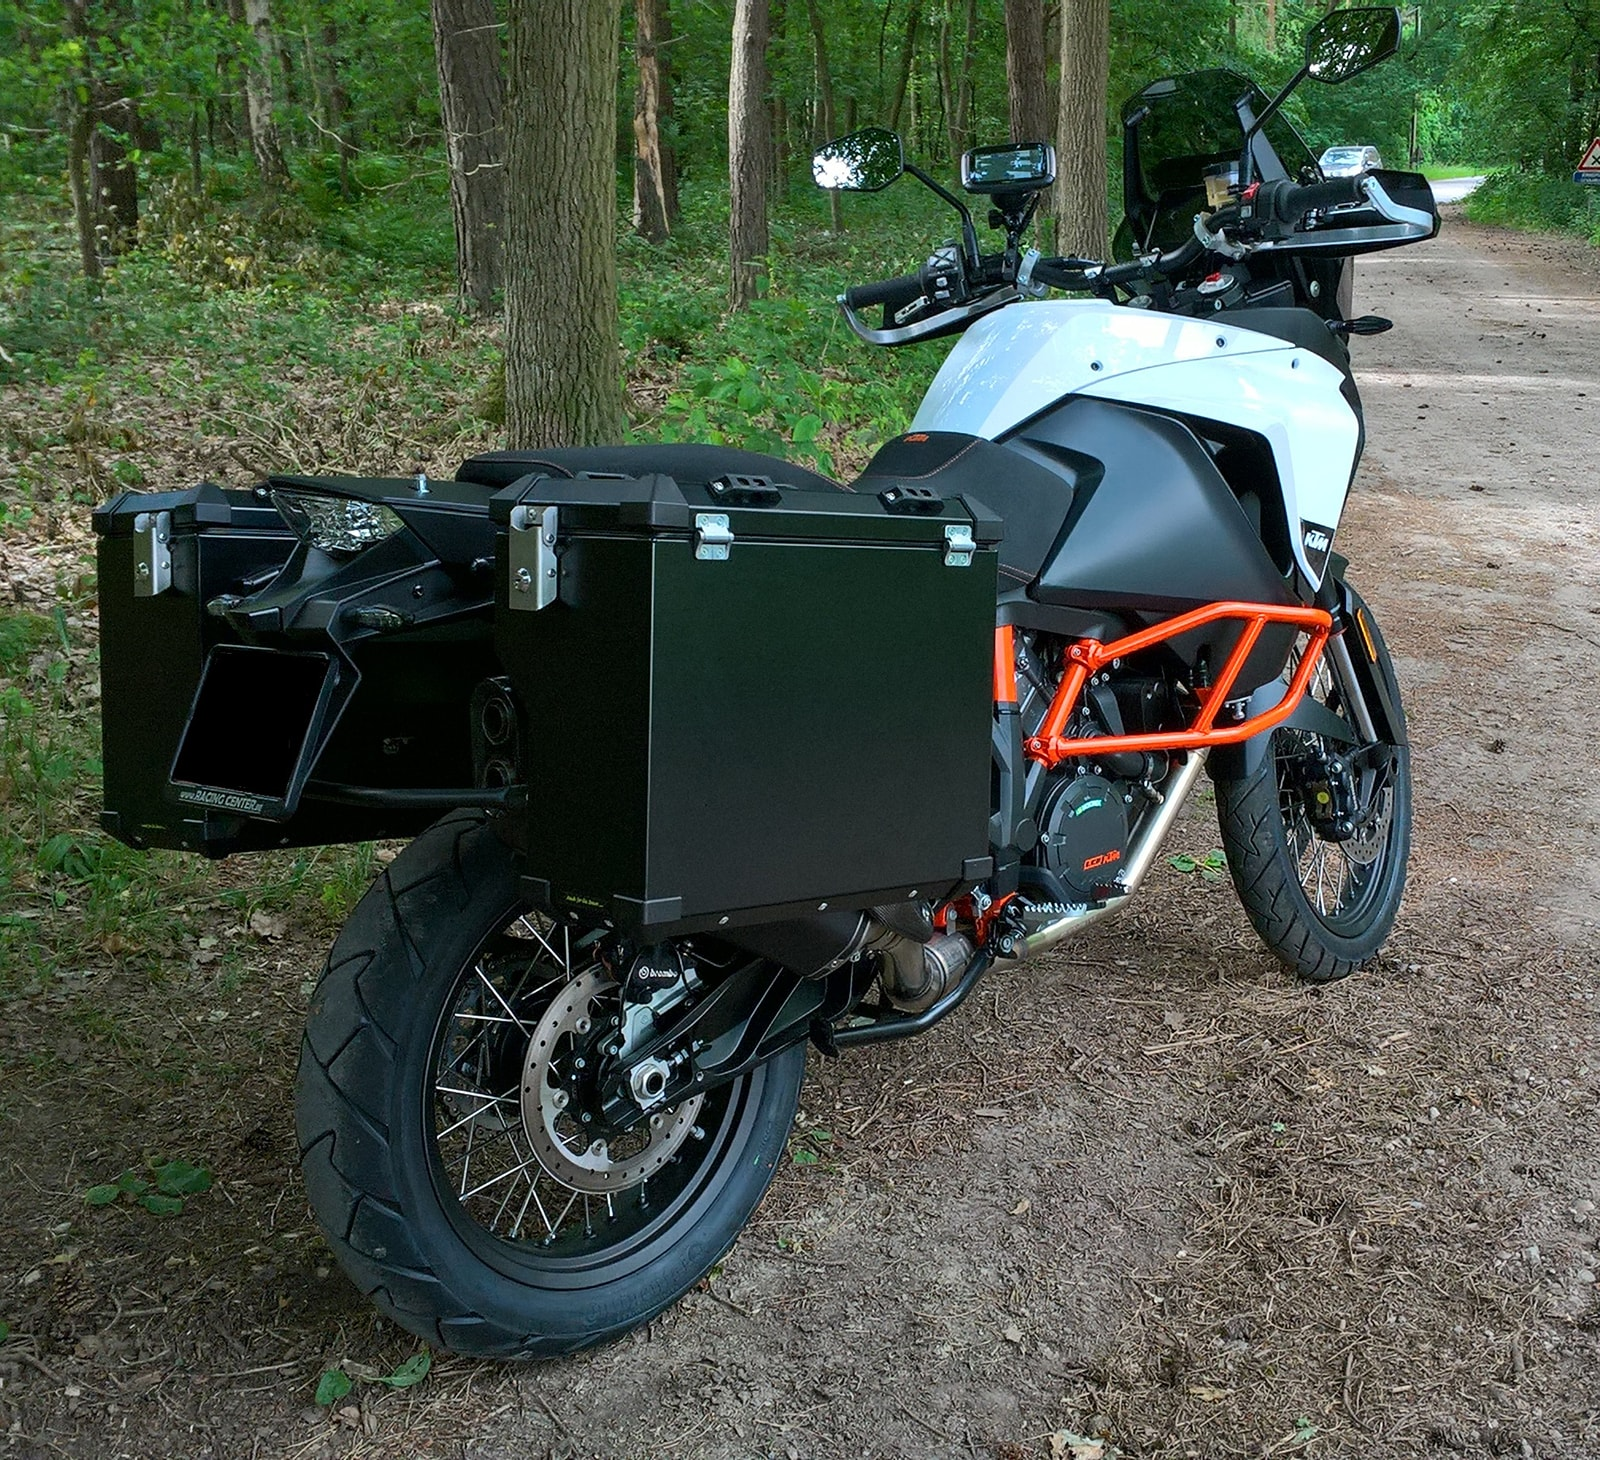 Panniers systems